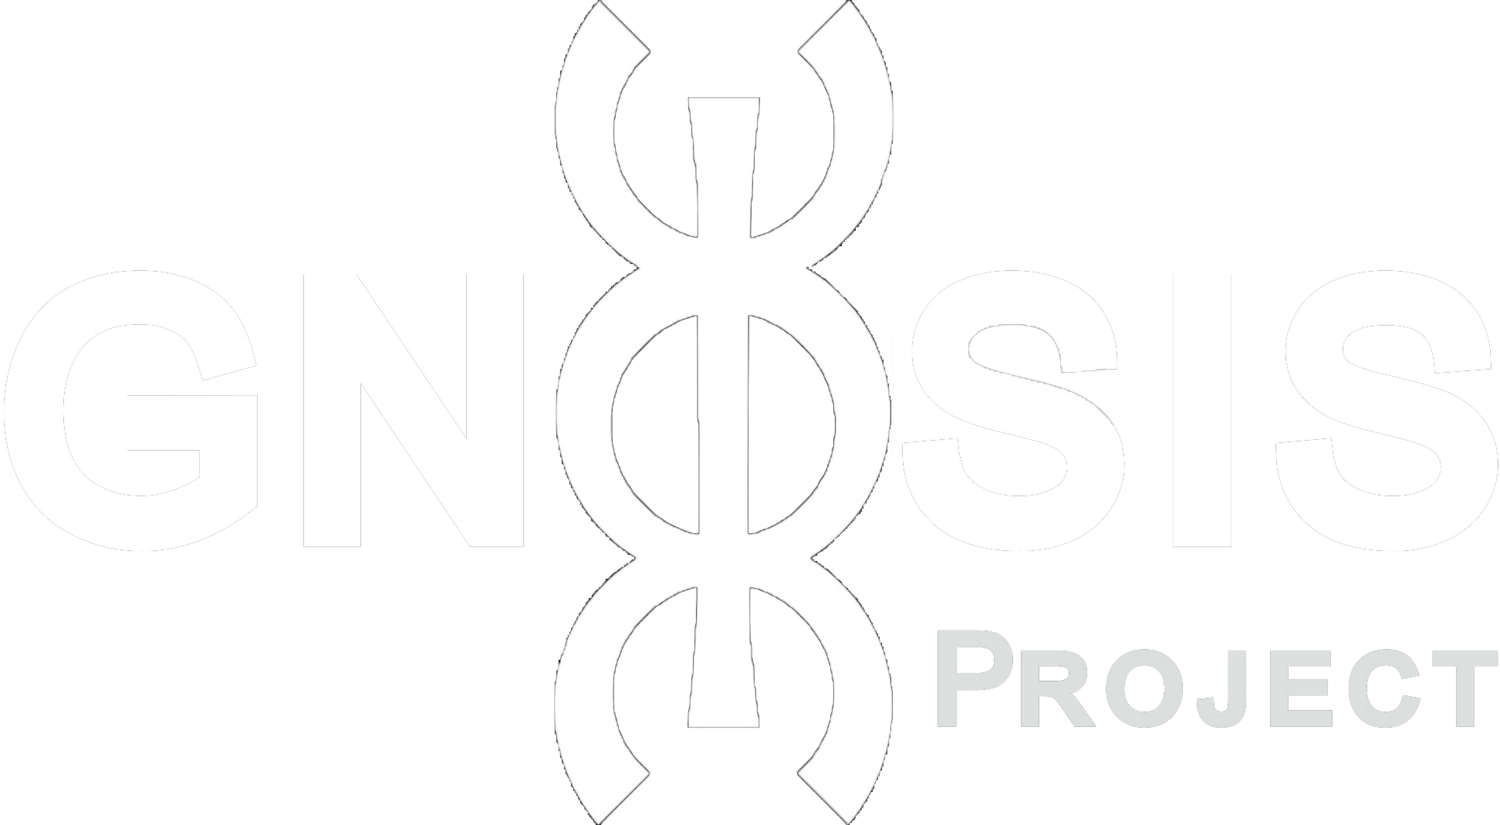 Gnosis Project